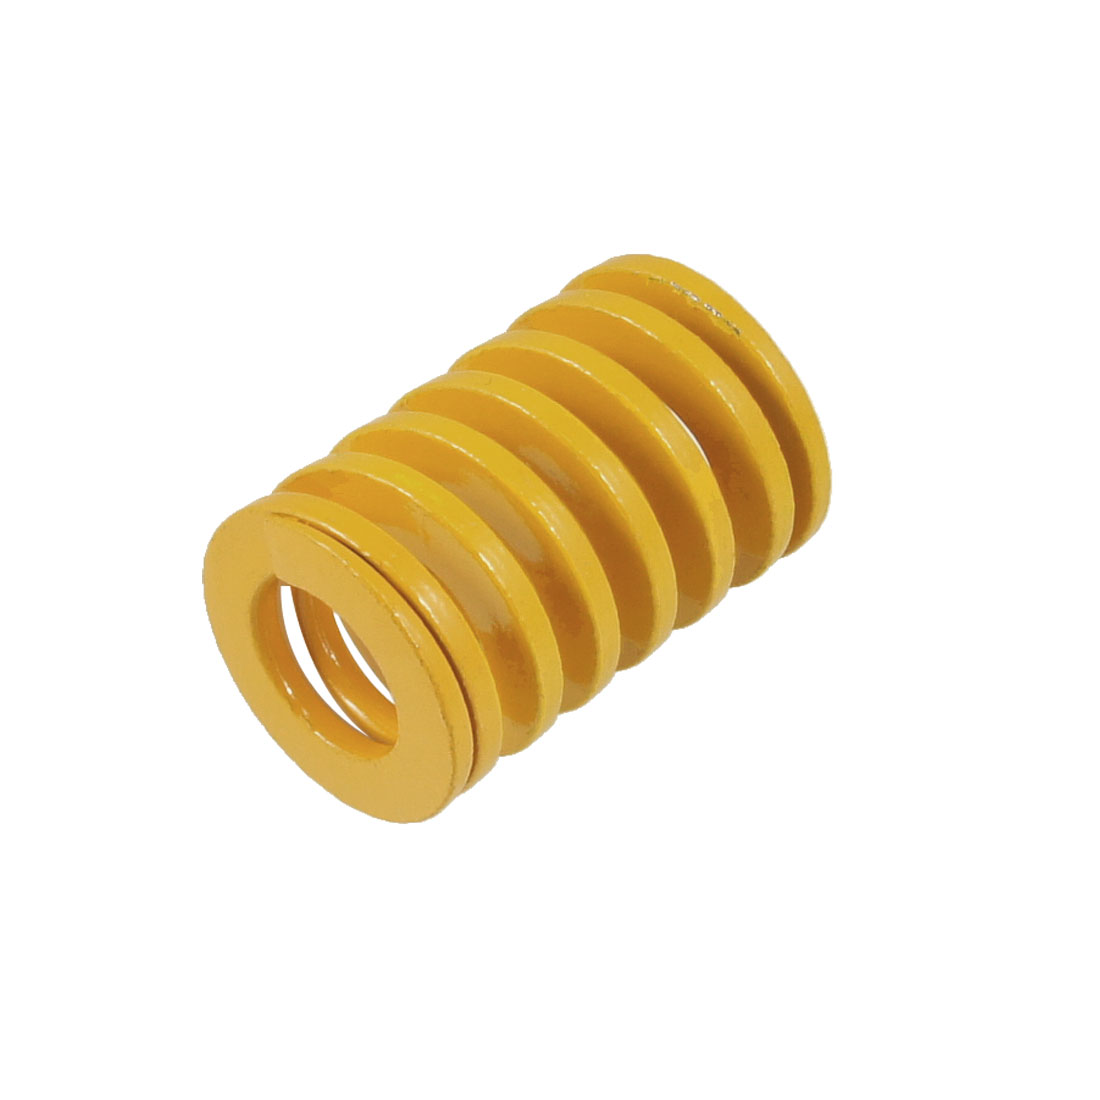 20mm x 11mm x 30mm Rectangular Section Mold Mould Die Spring